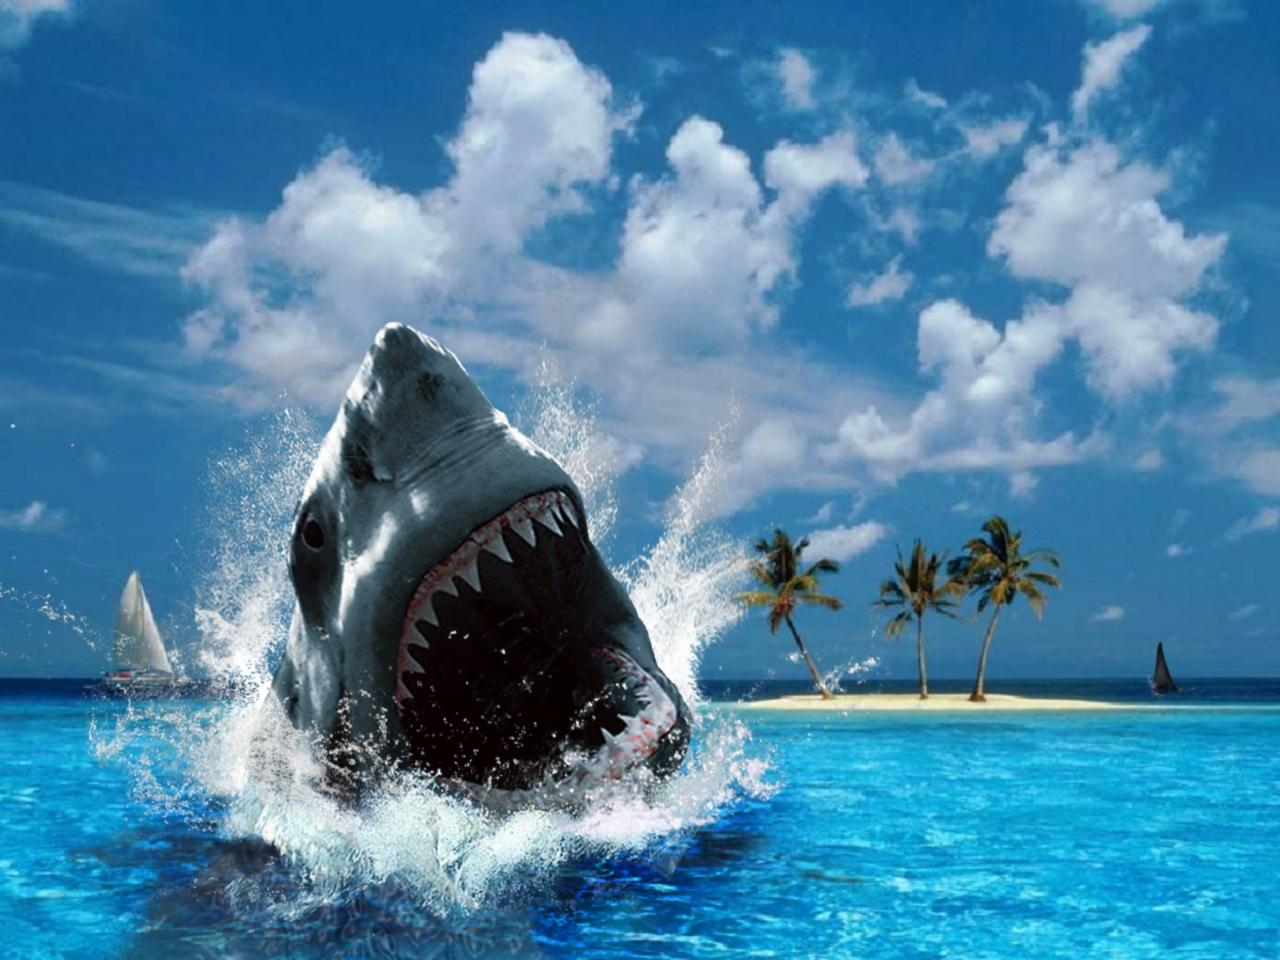 Shark wallpapers with sea backgrounds suitable for adventure s desktop